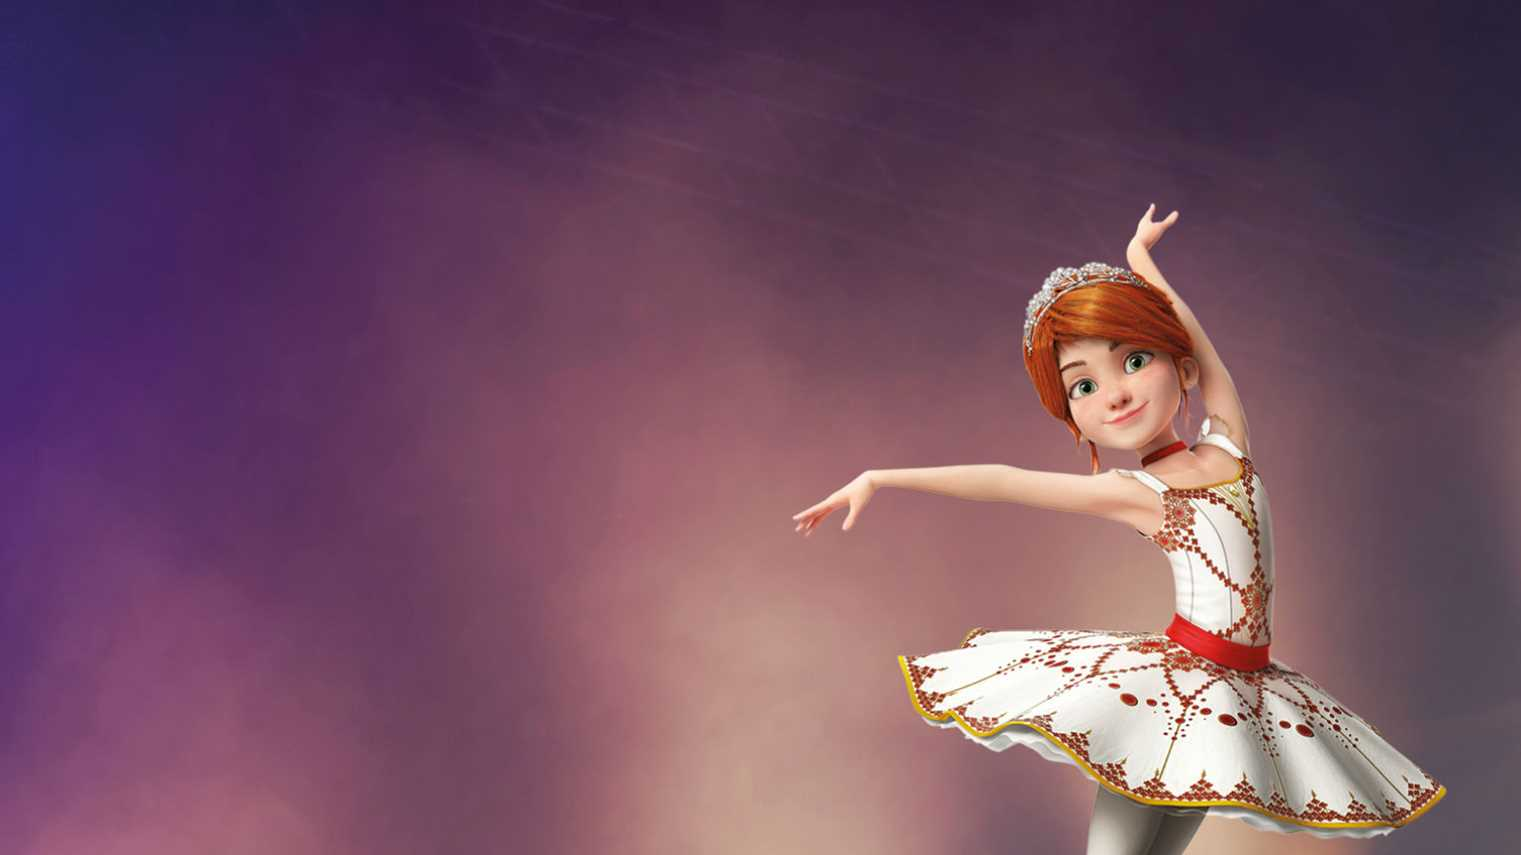 Five reasons why you should take your tiny dancer to see Ballerina this Christmas